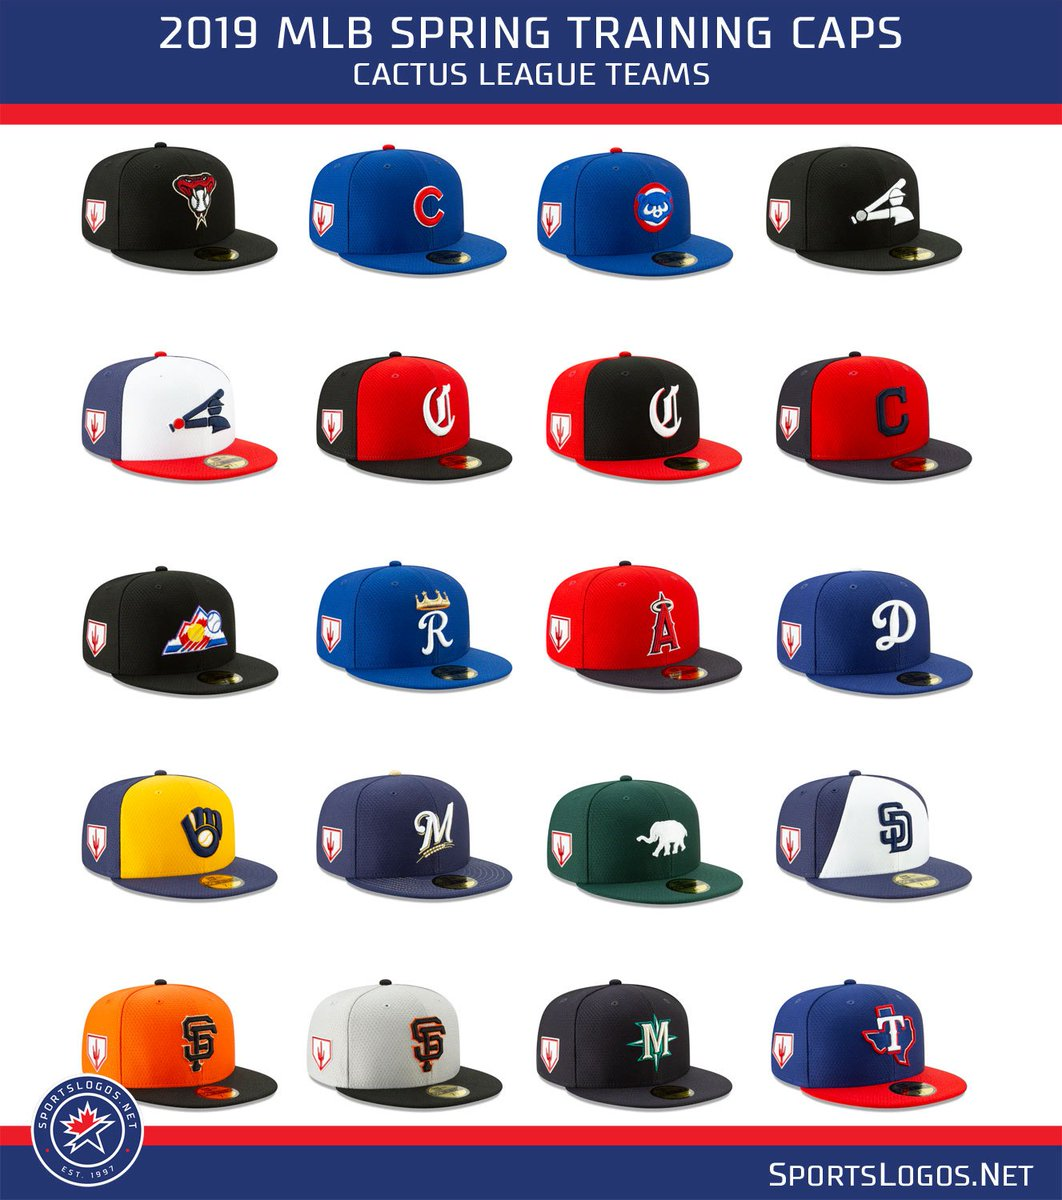 a92f7a759be Major League Baseball has released its 2019 Spring Training cap collection.   MLB  SpringTraining2019  NewEra Details